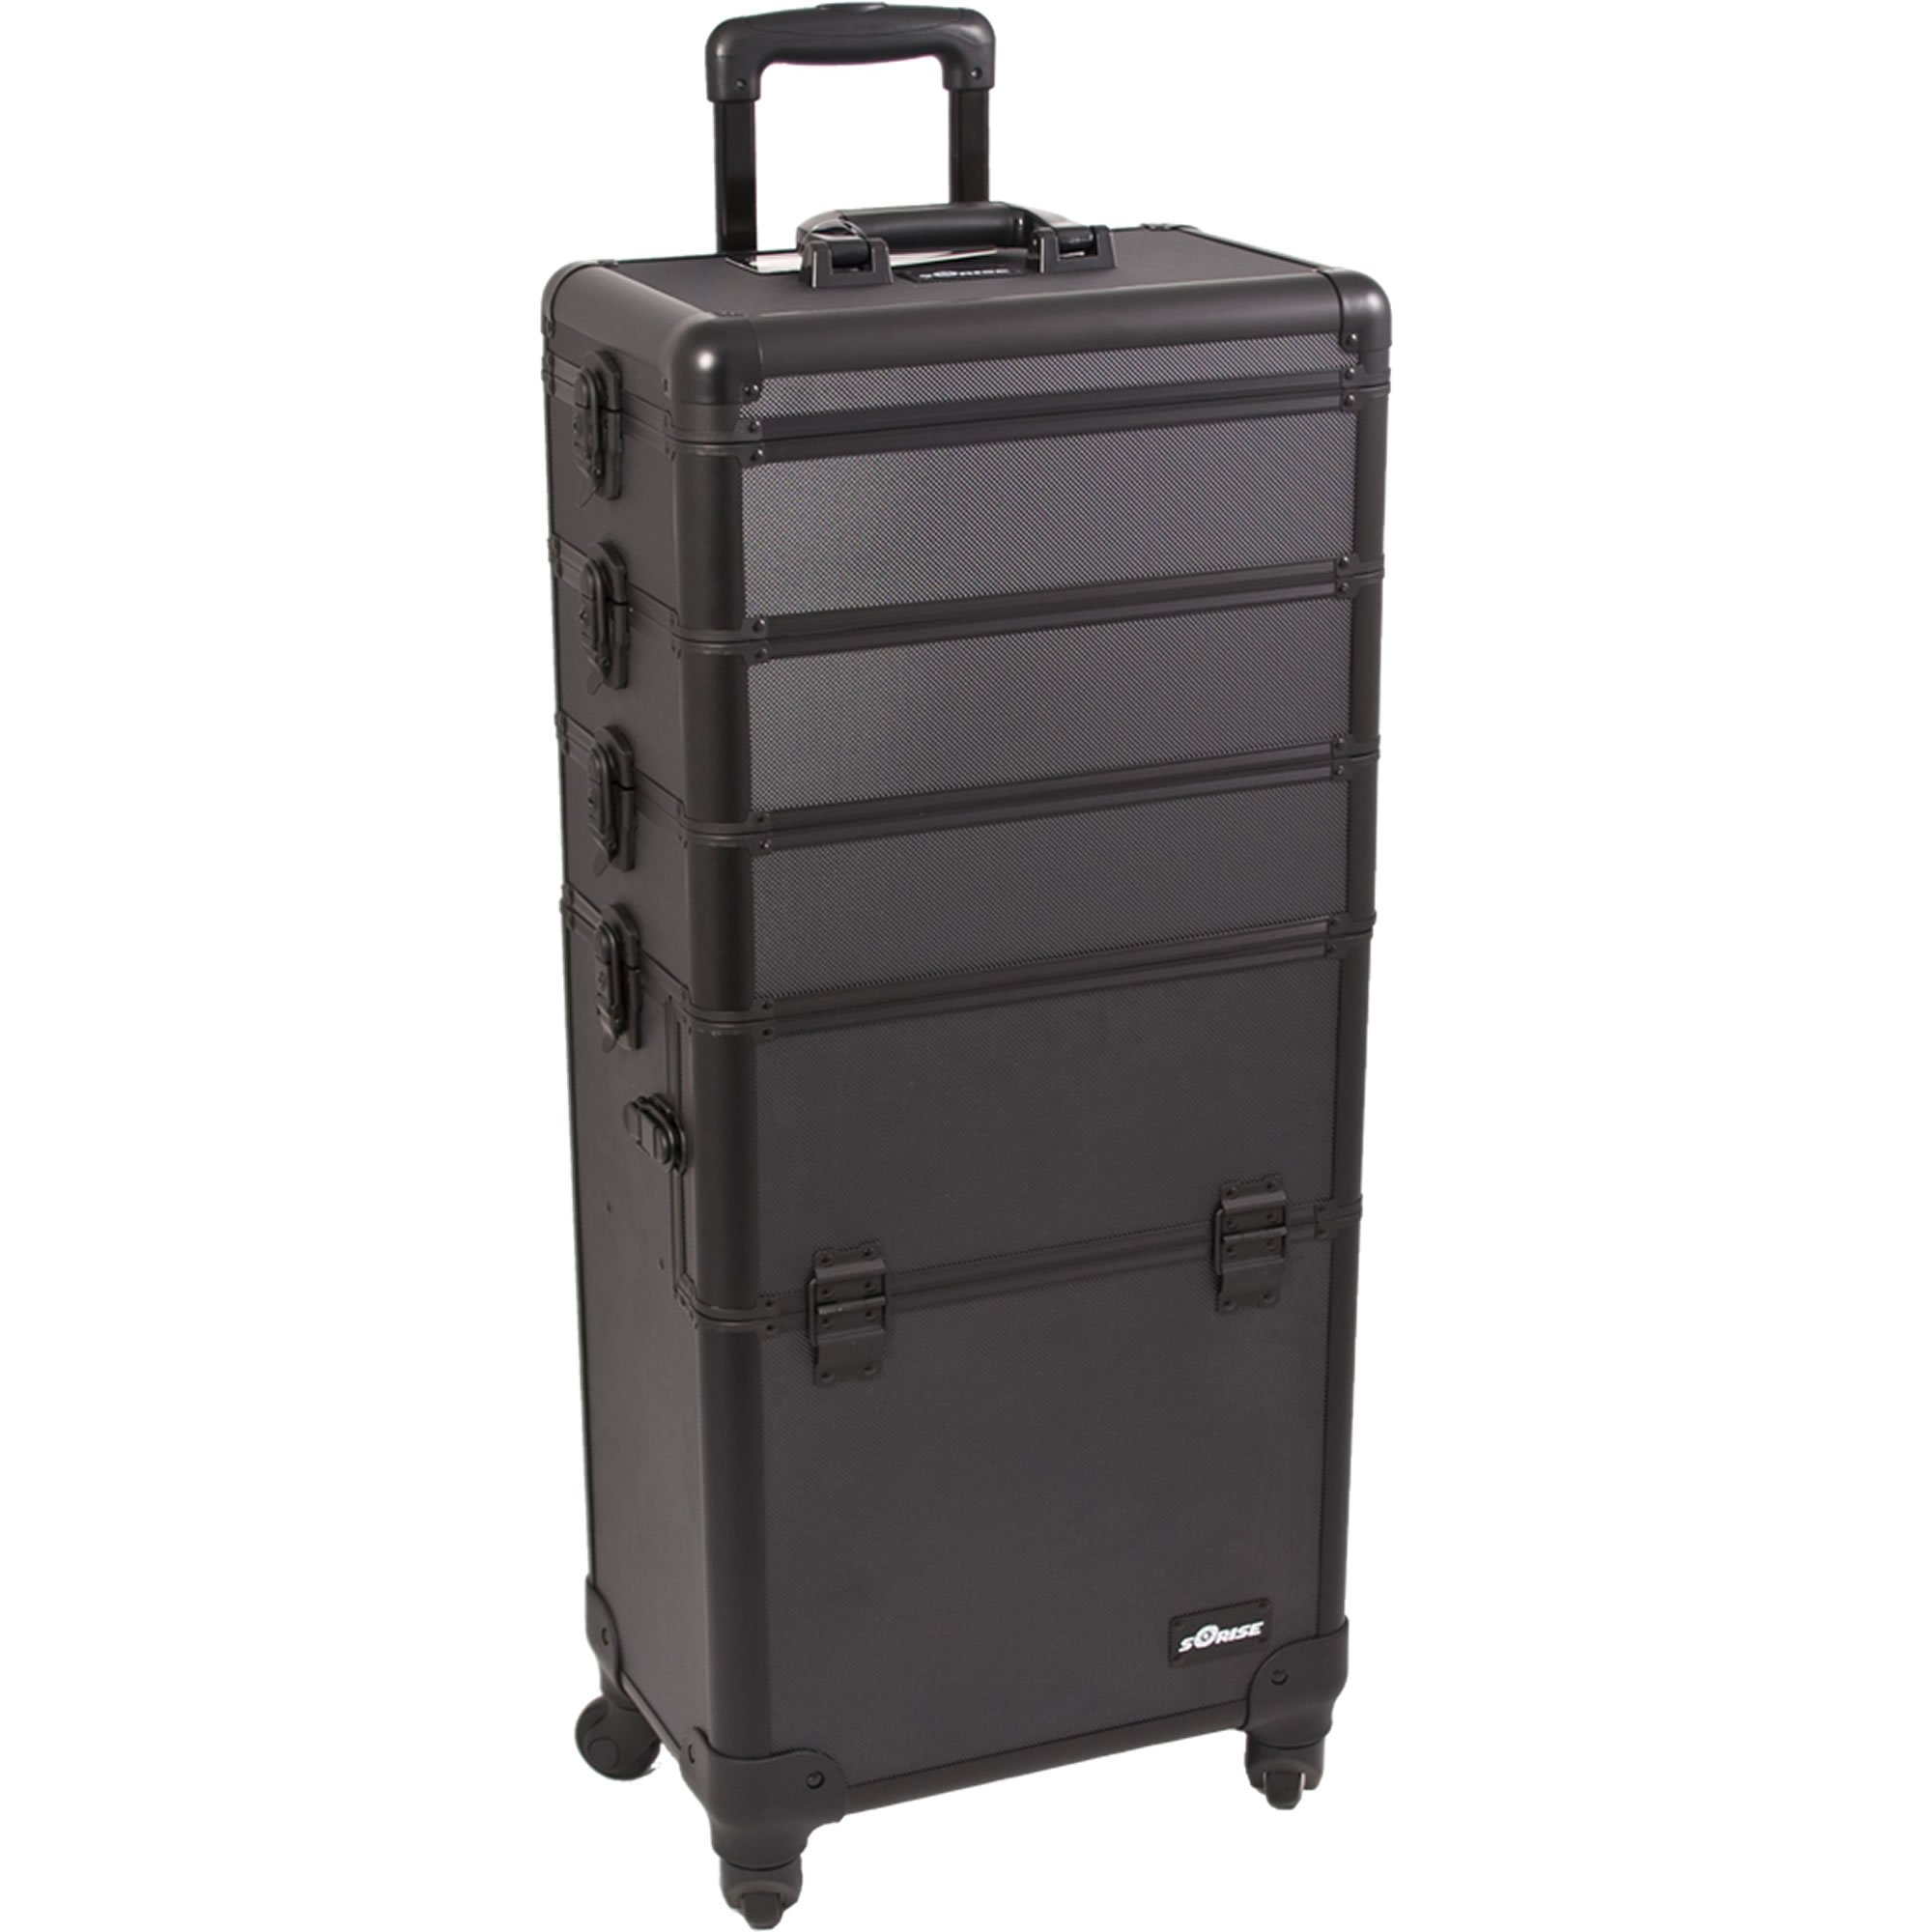 SUNRISE Makeup Case on Wheels 4 in 1 Professional Organizer I3361 Aluminum, 3 Stackable Trays with Adjustable Dividers, Locking with Mirror, Black Dot